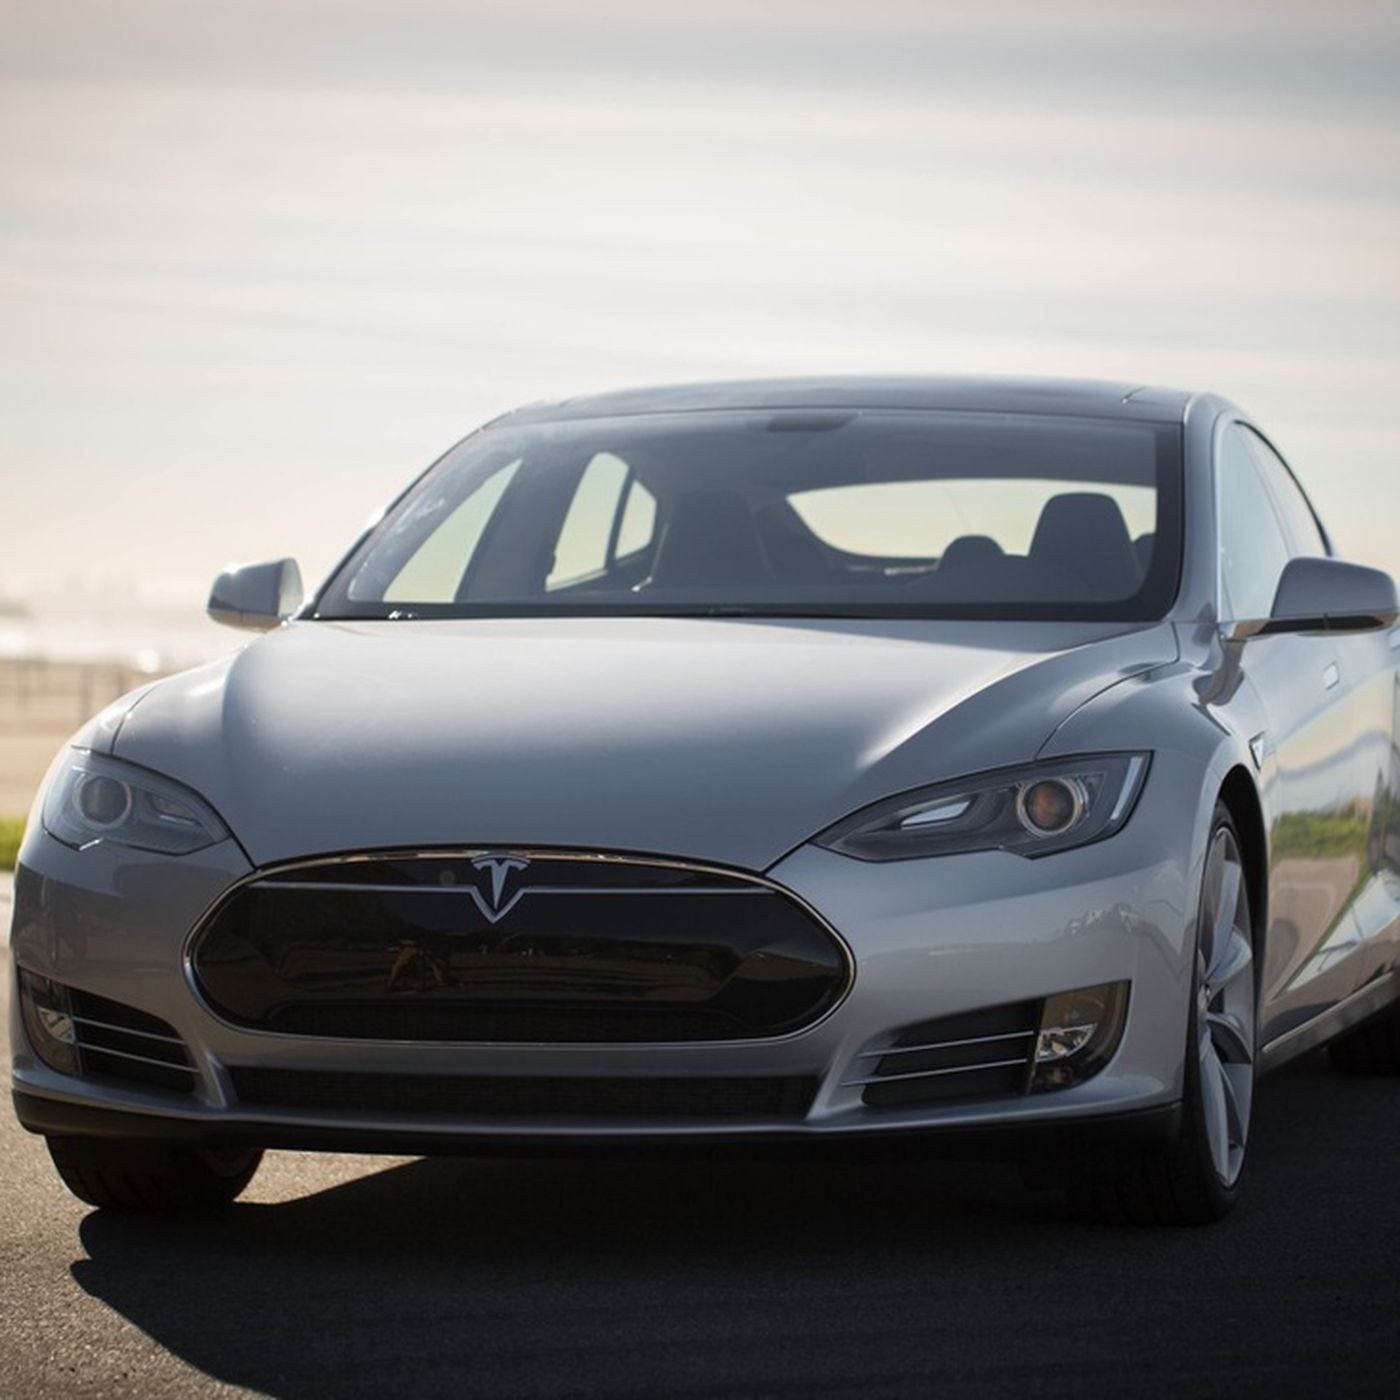 Tesla adds titanium shield to Model S to prevent battery